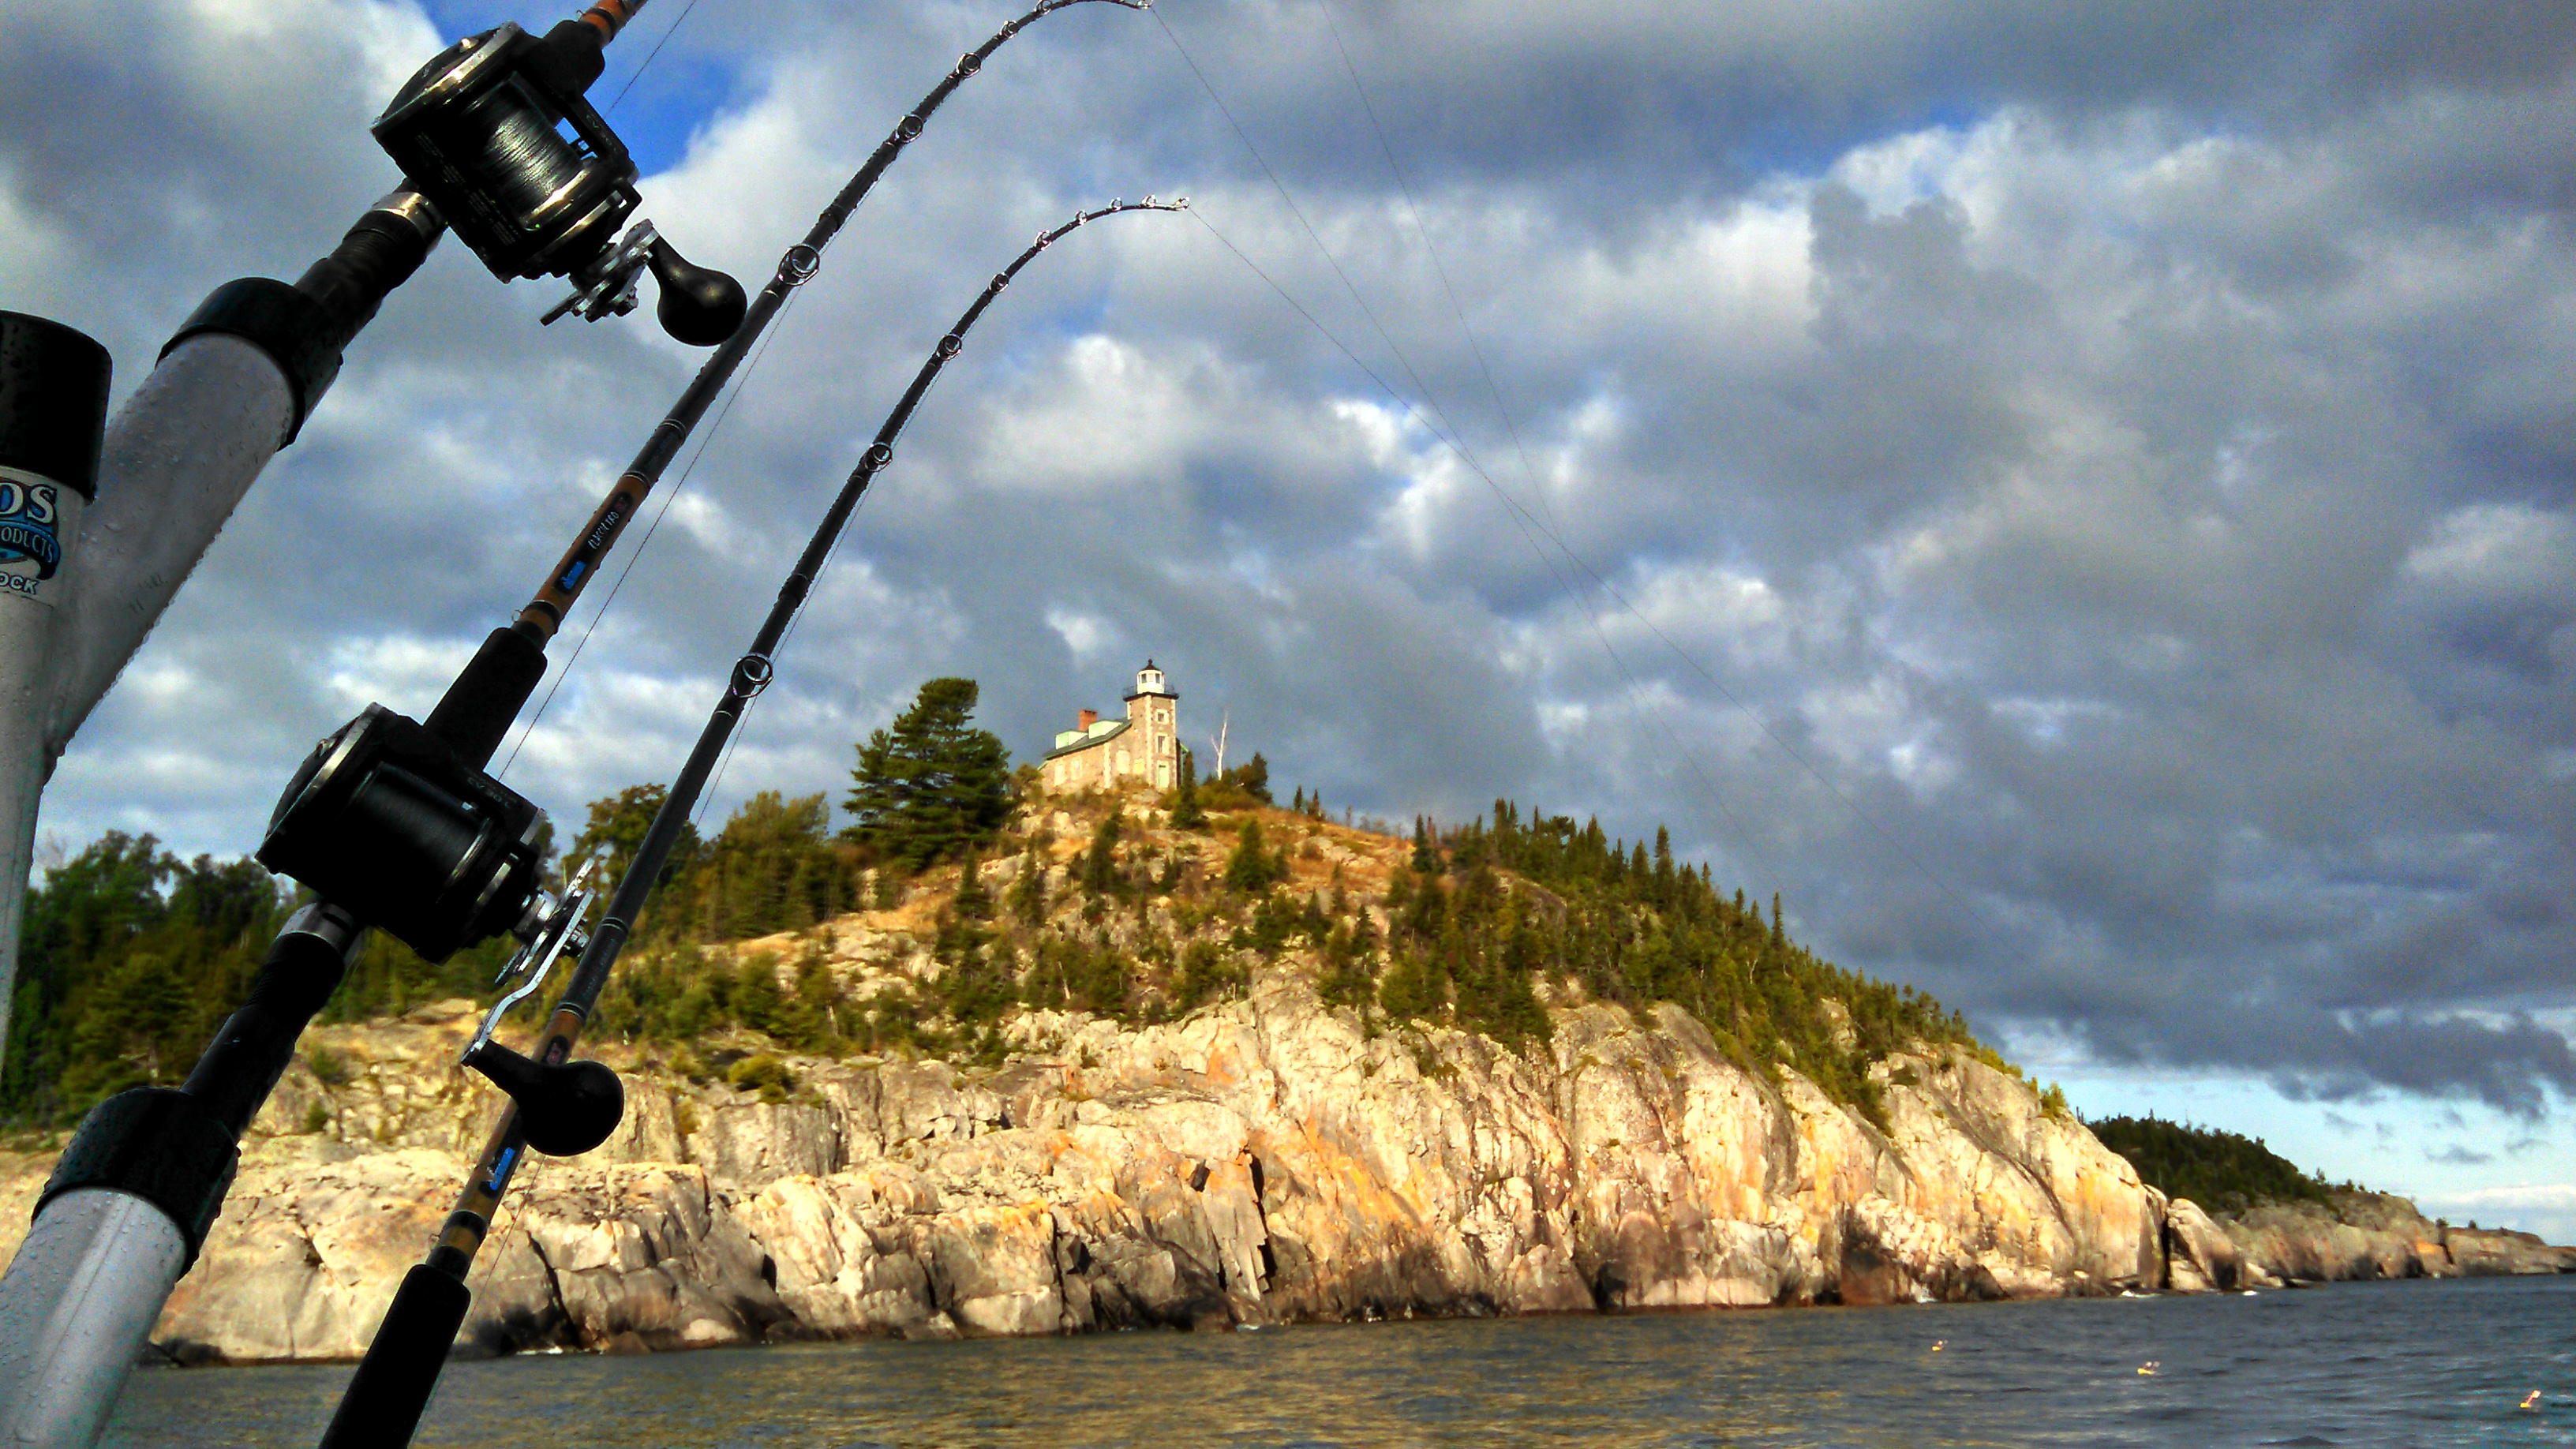 Upper Peninsula Charter Fishing